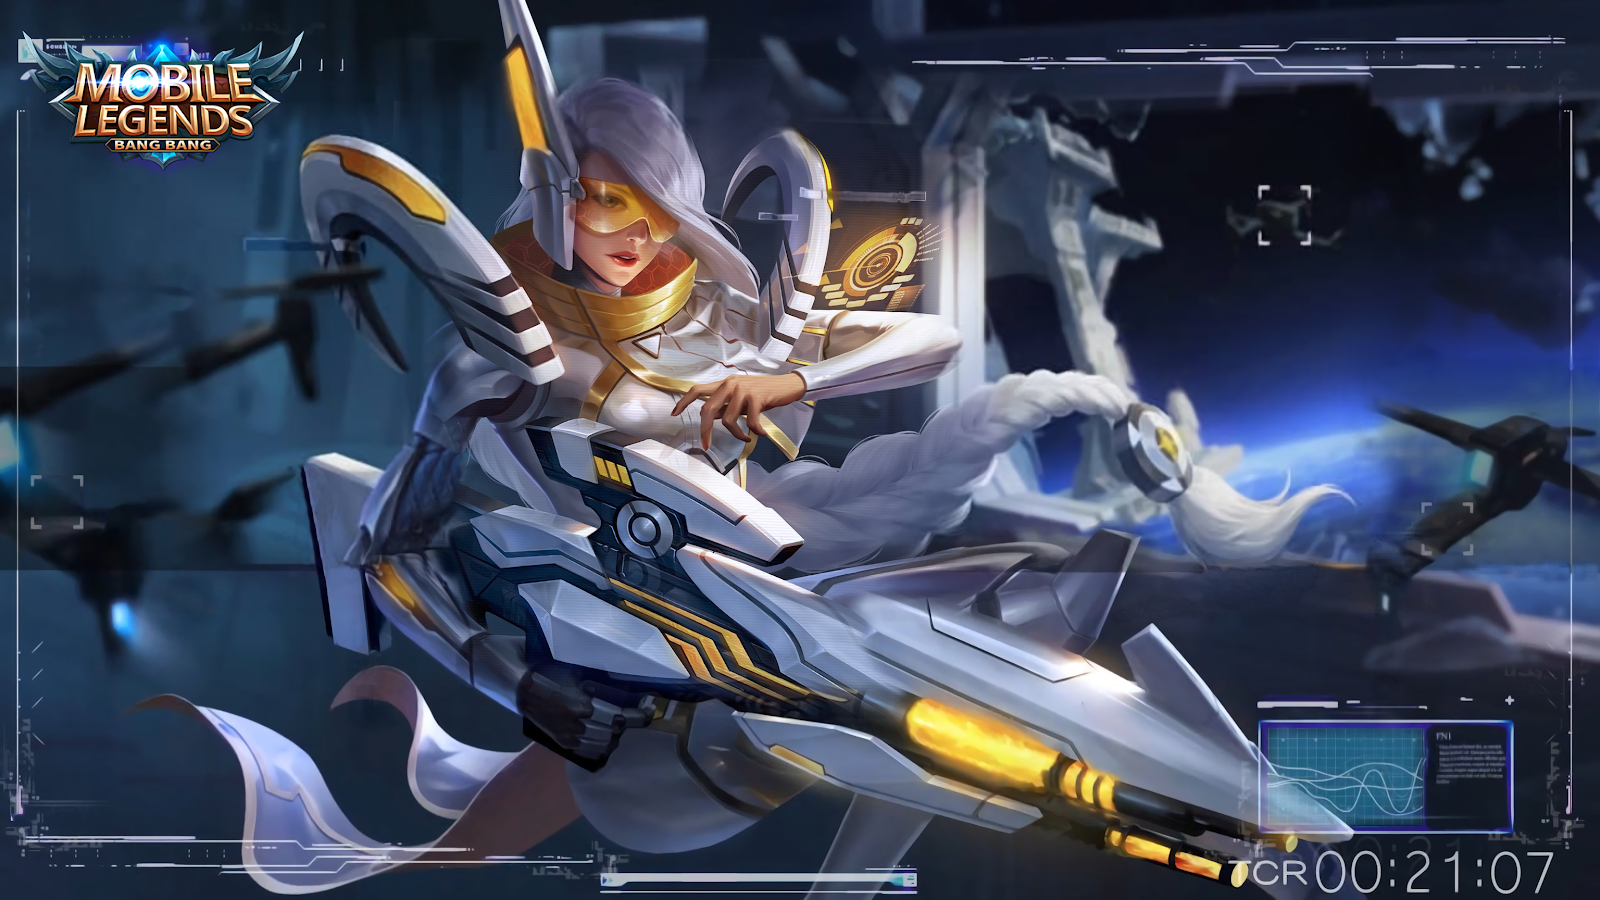 Mobile Legend 2019 Wallpapers ...